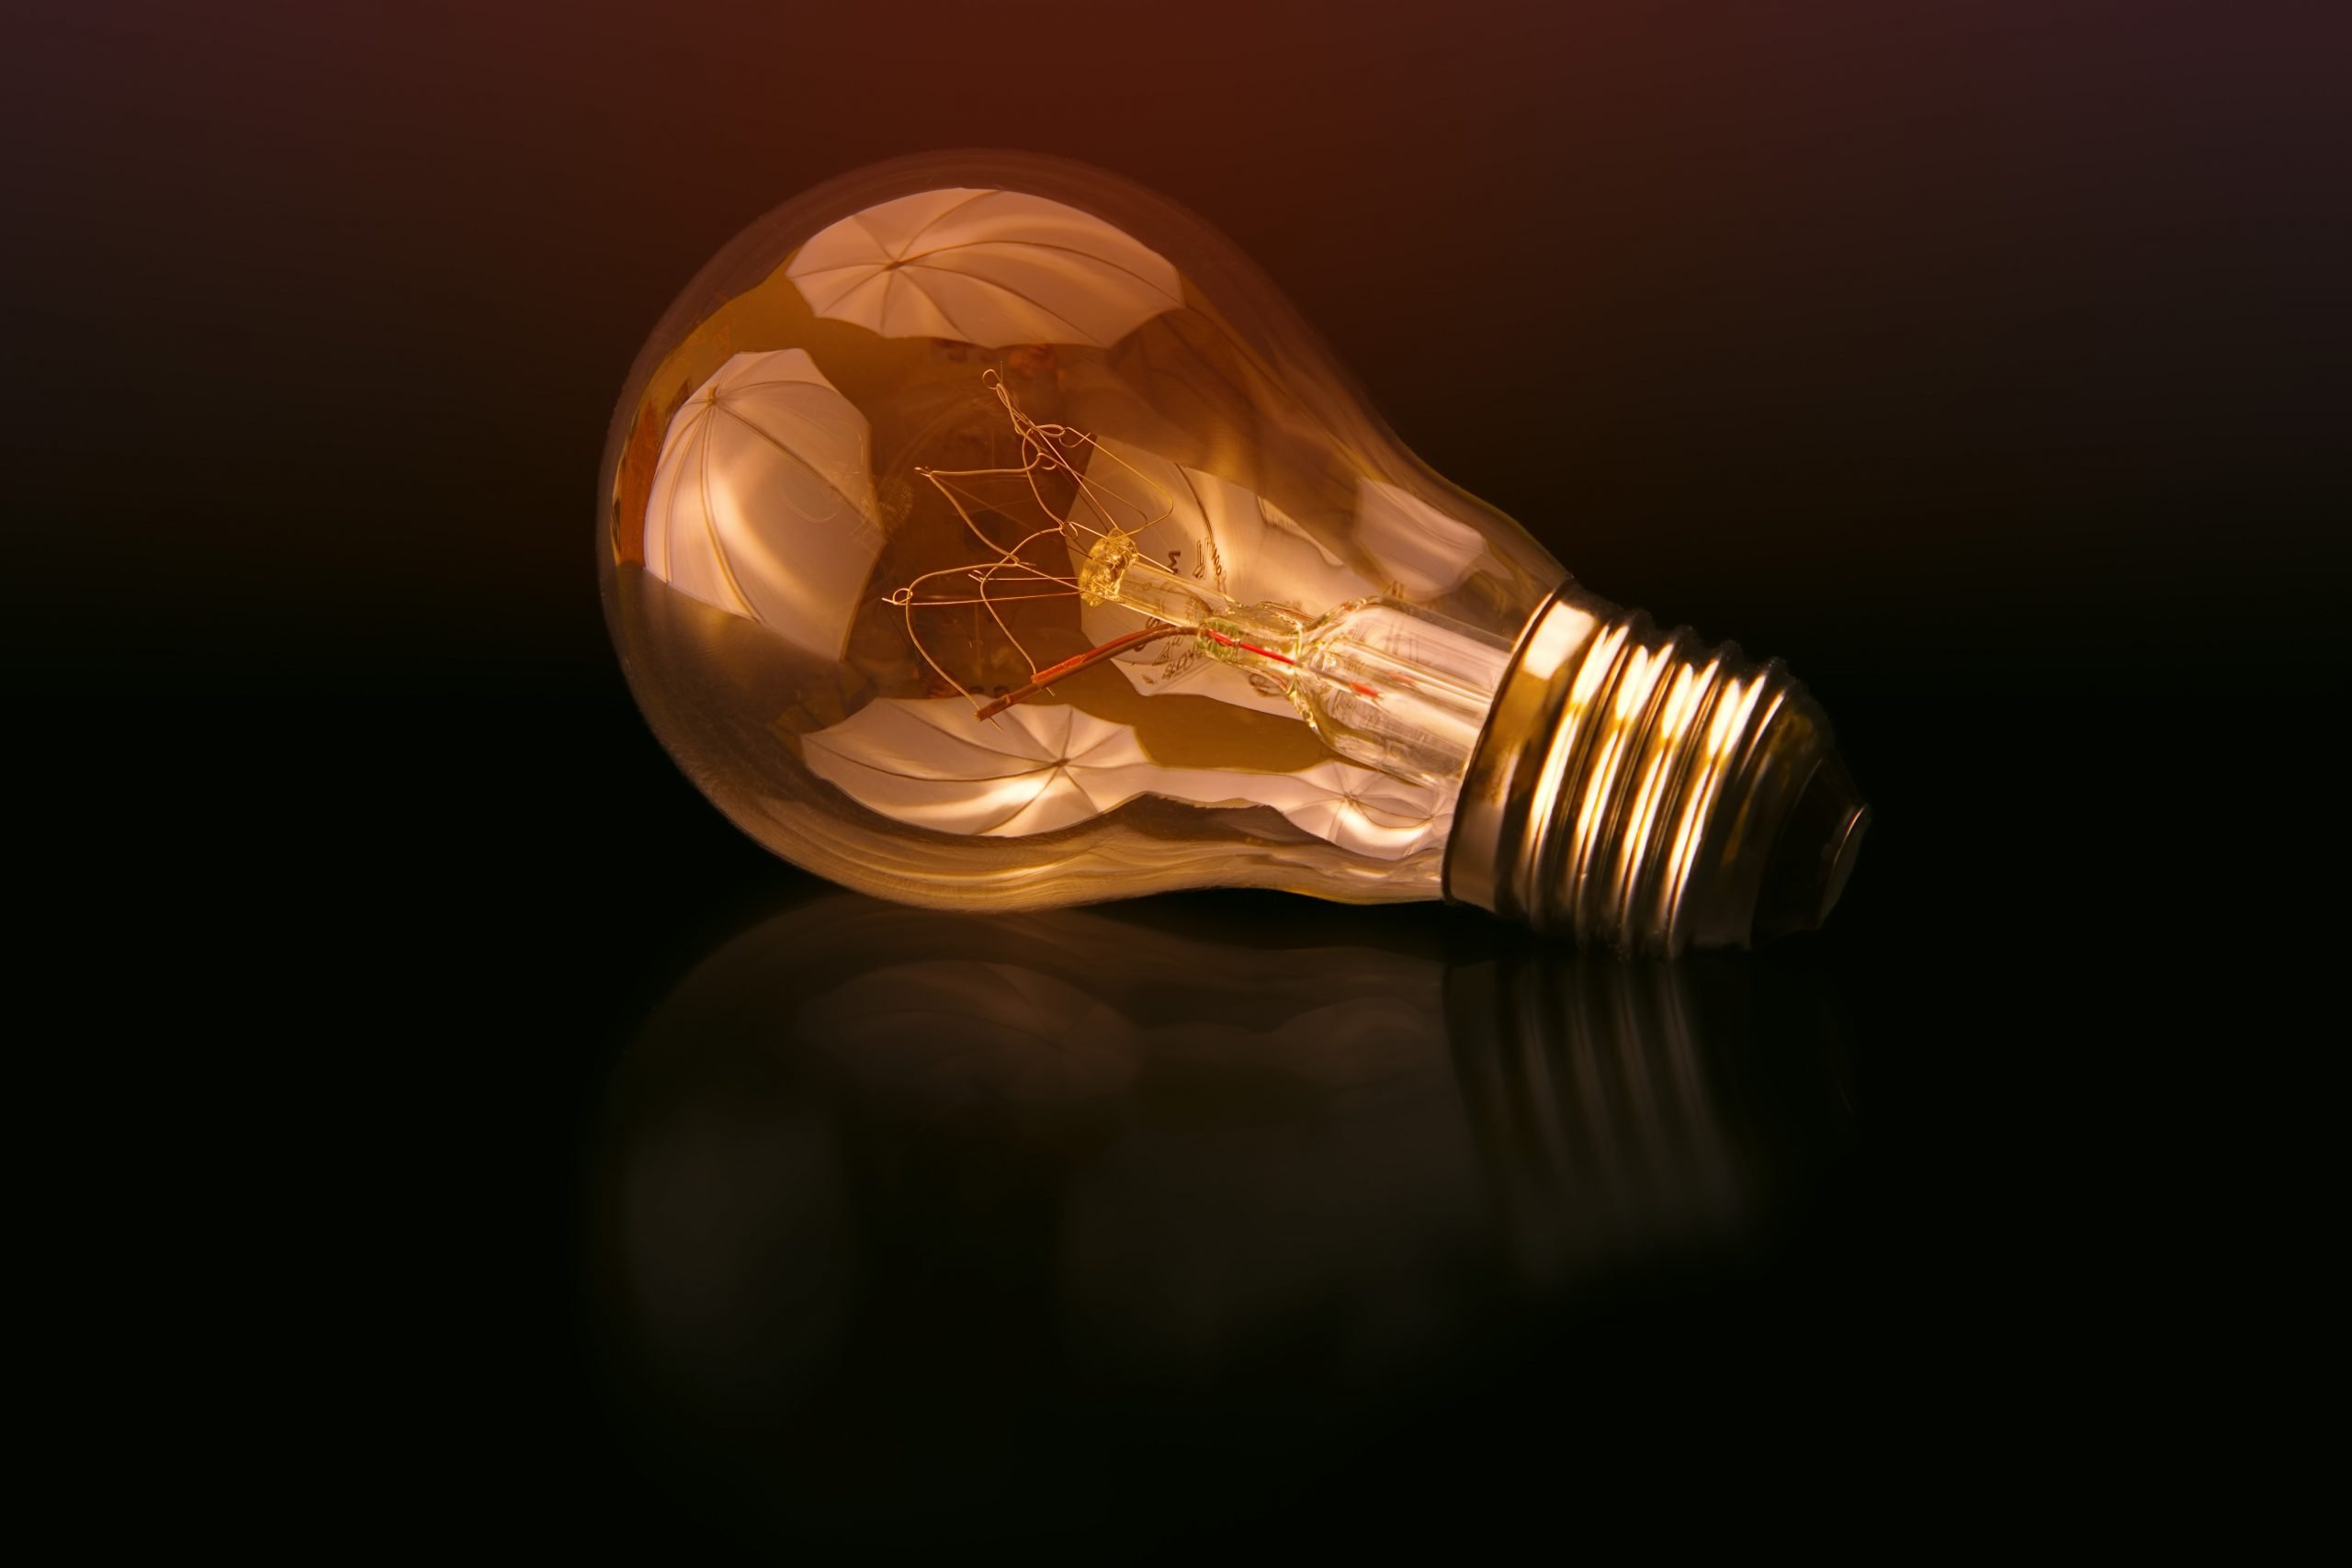 Image is a photograph of light bulb